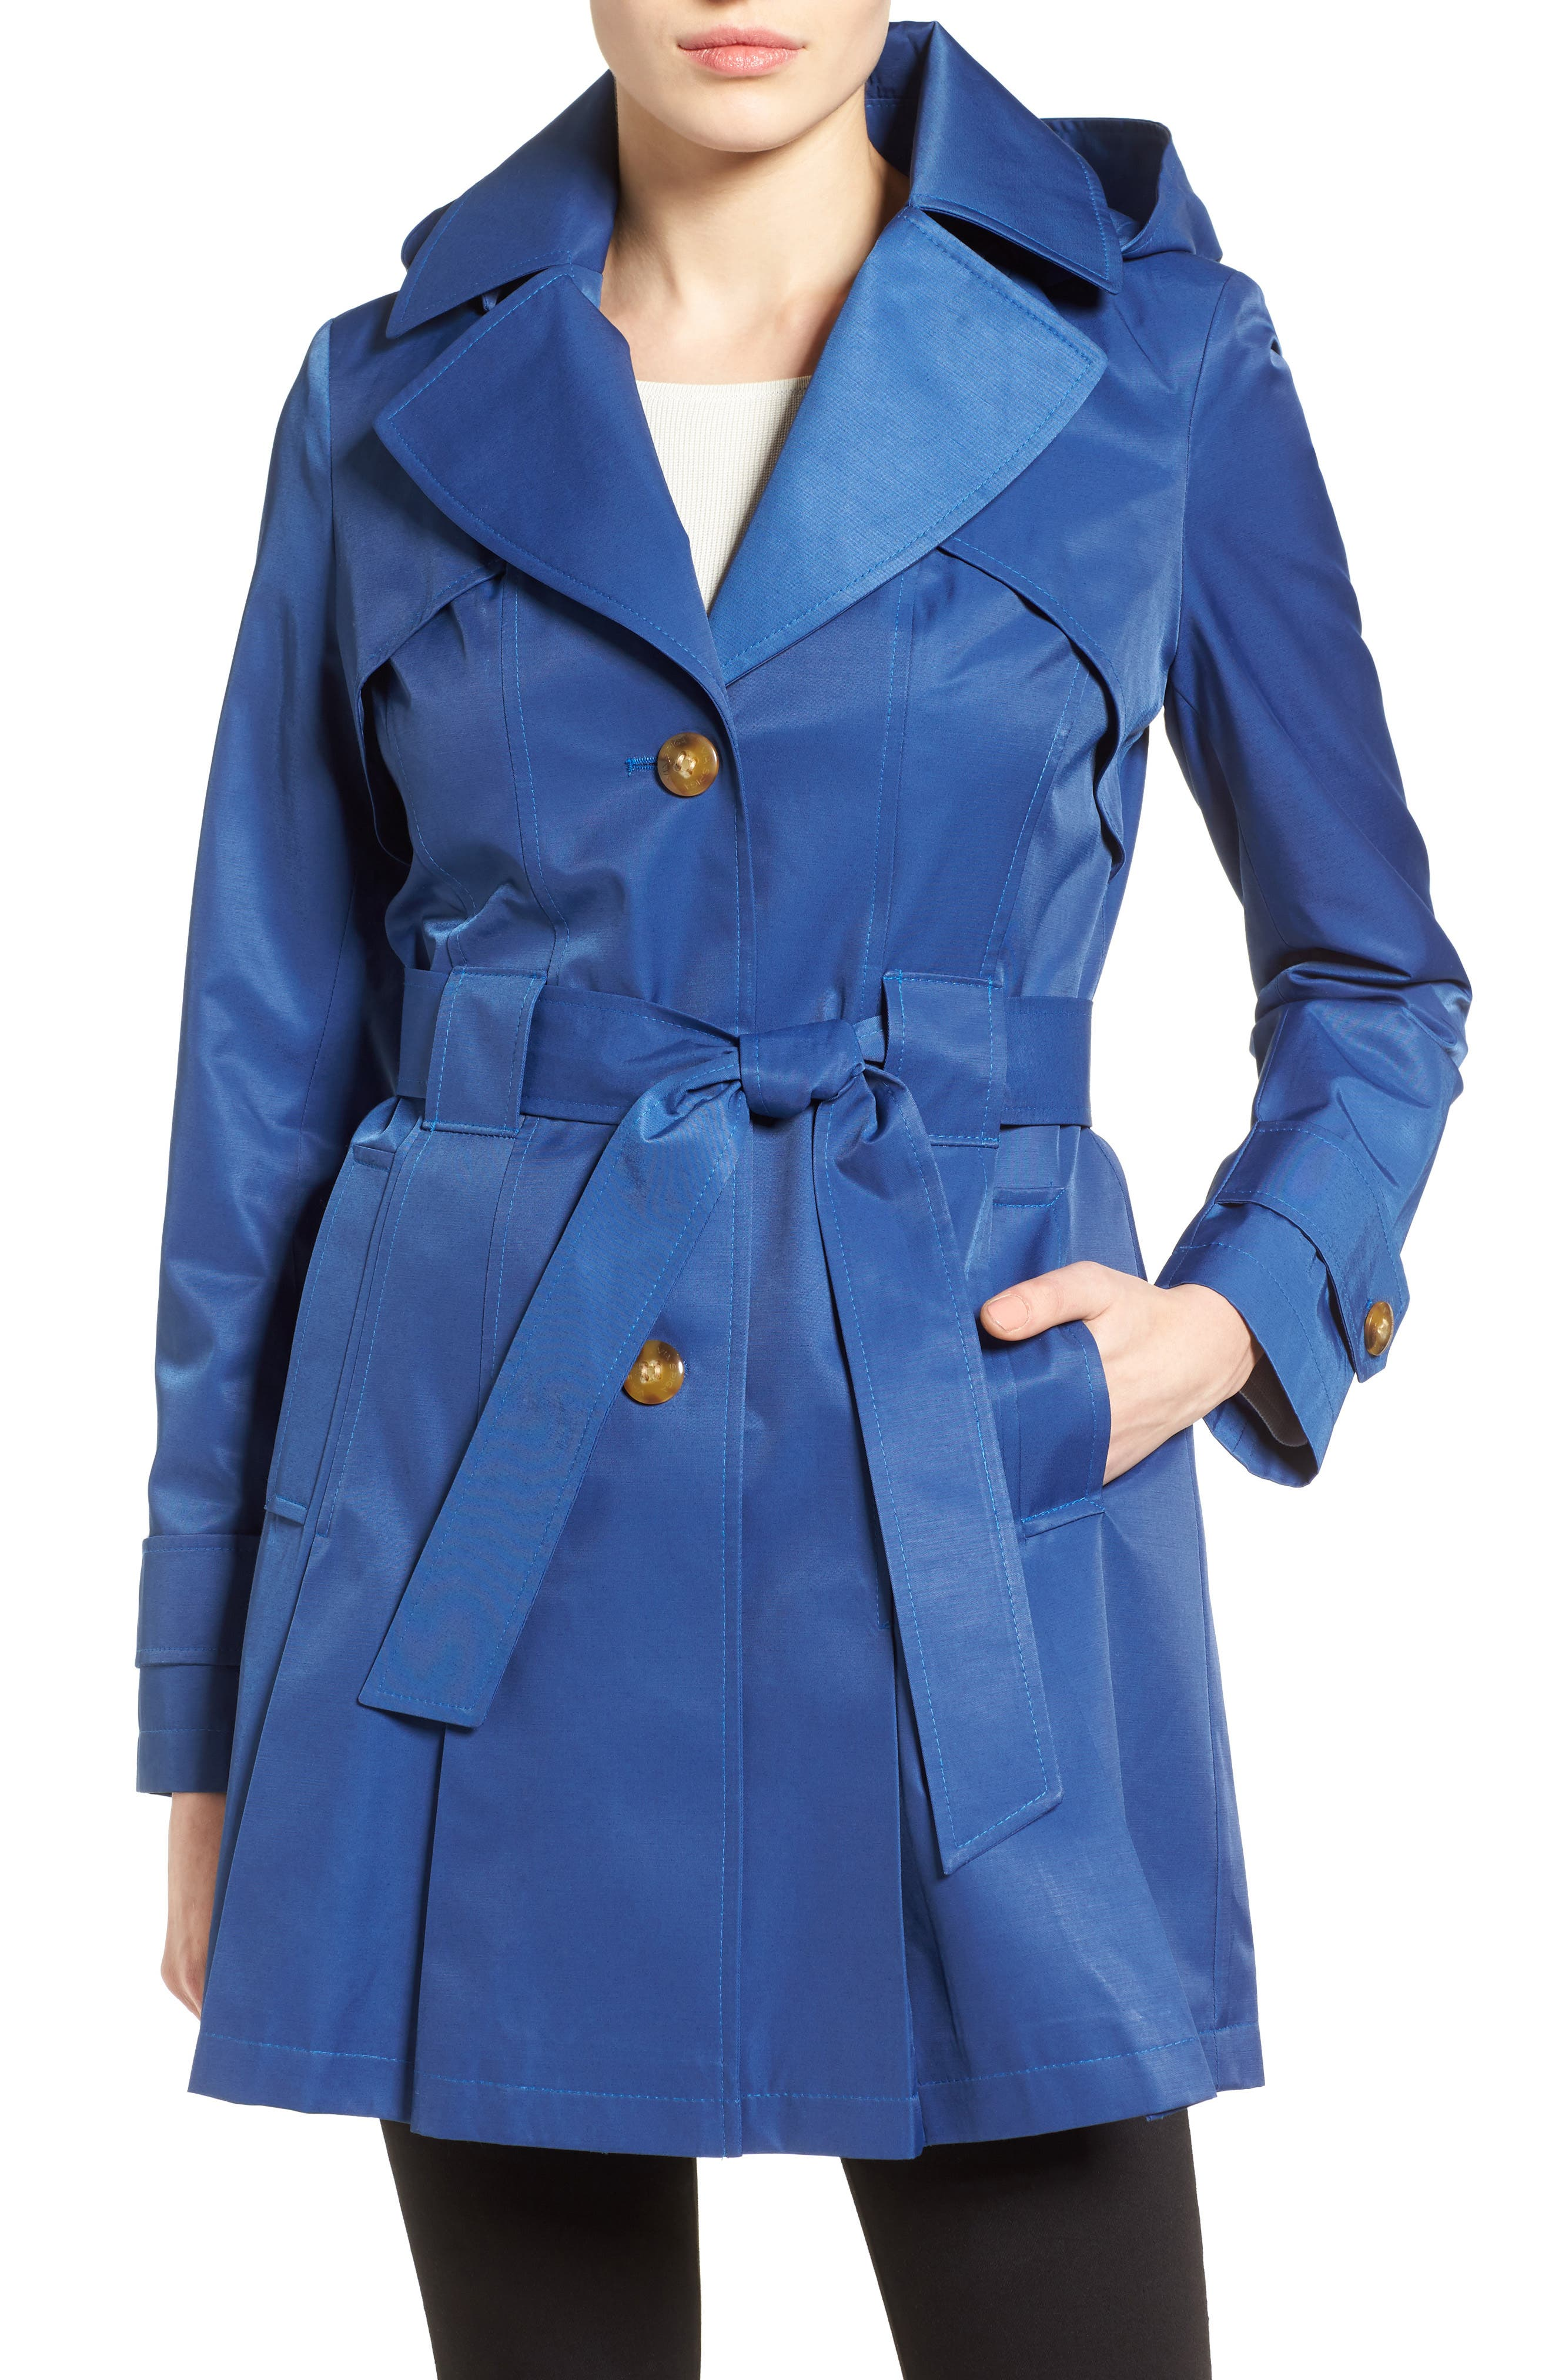 'Scarpa' Hooded Single Breasted Trench Coat,                             Main thumbnail 6, color,